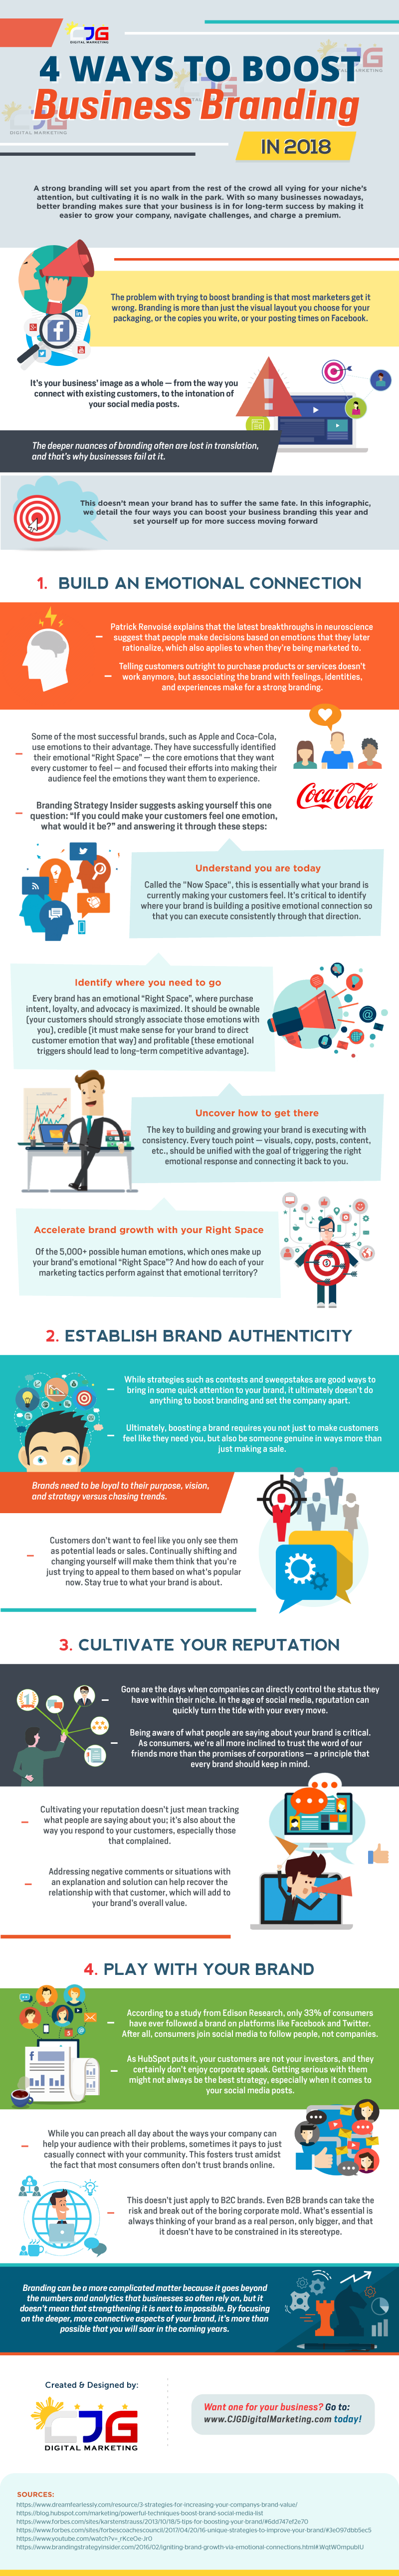 4 Ways to Boost Business Branding (Infographic)